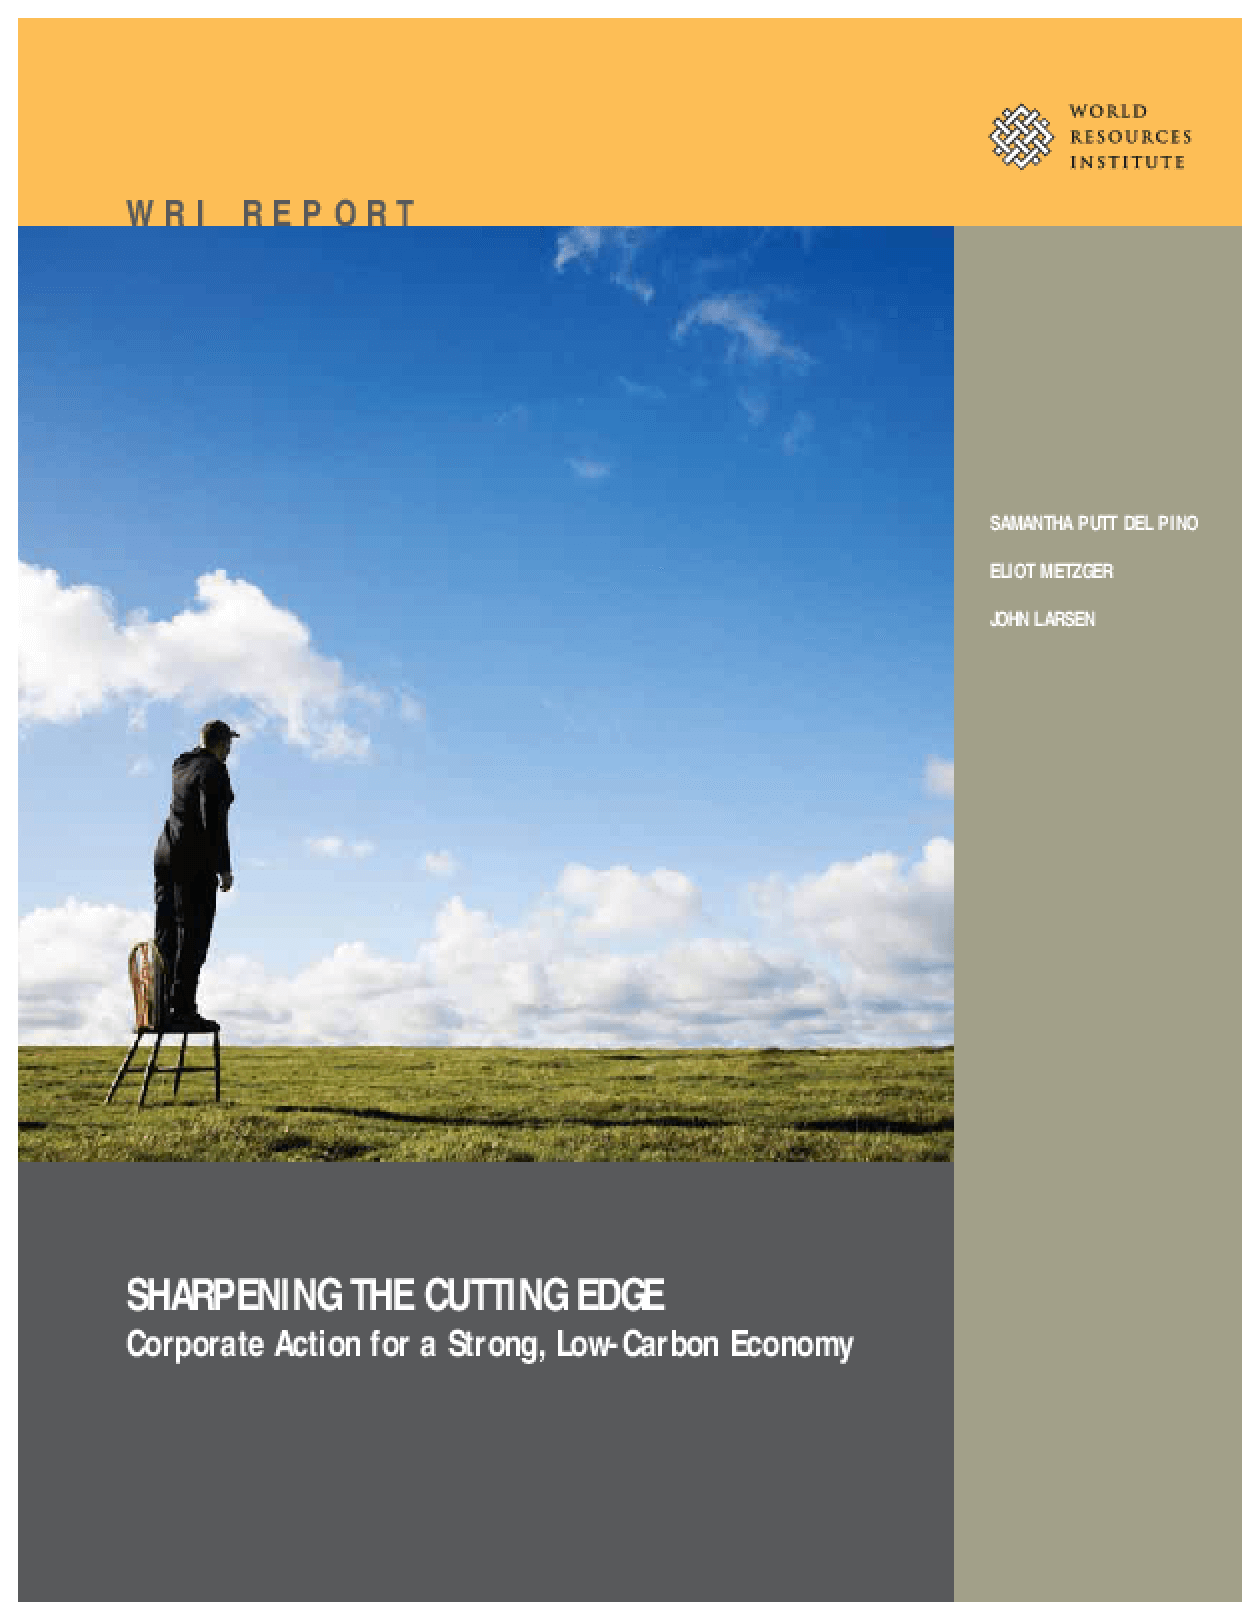 Sharpening the Cutting Edge: Corporate Action for a Strong, Low-Carbon Economy